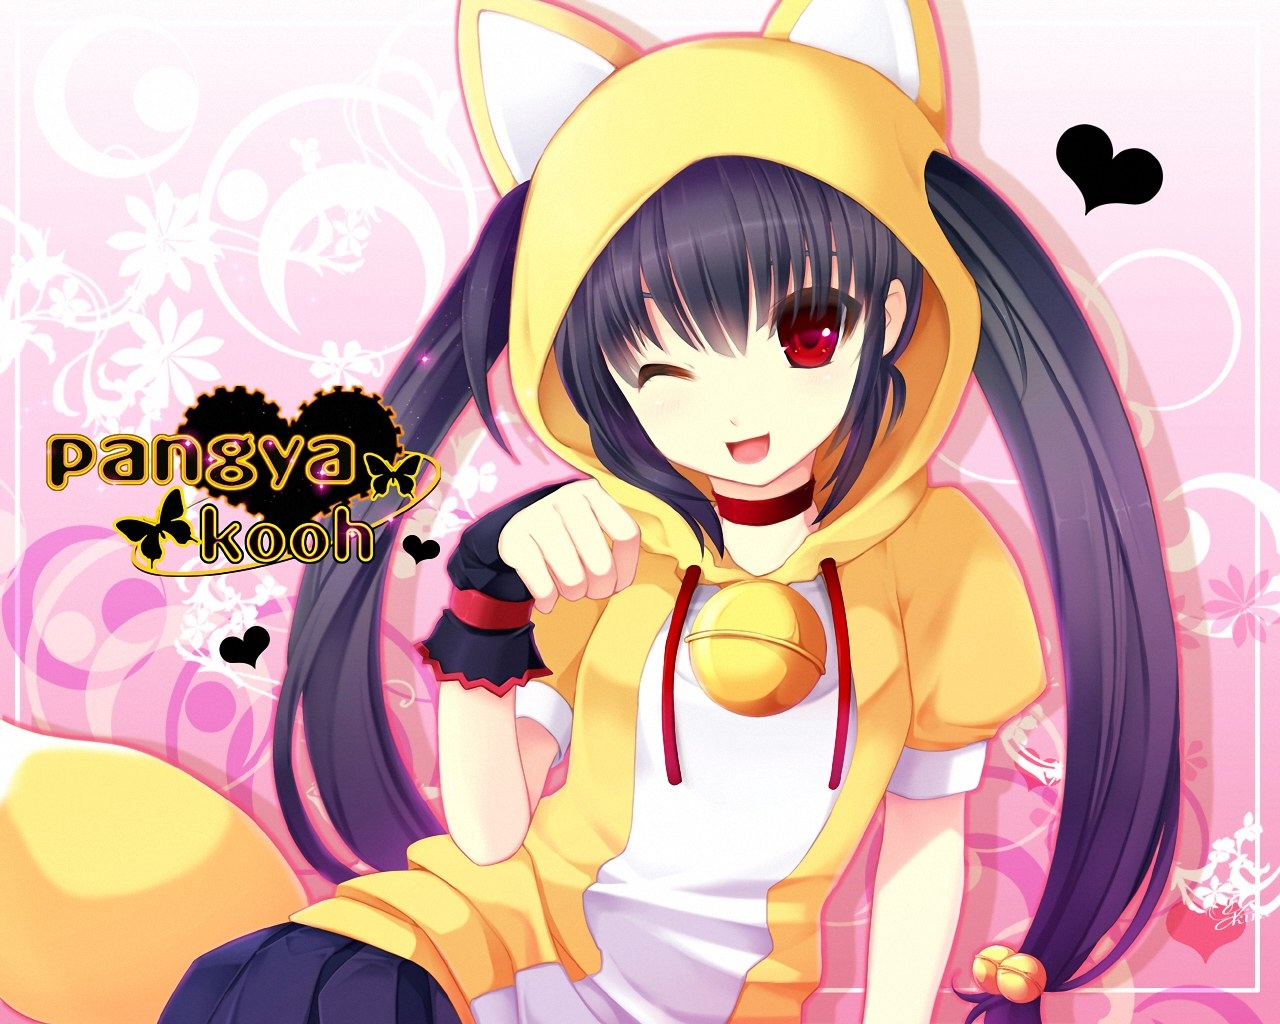 anime super fan images neko girl HD wallpaper and background photos 1280x1024